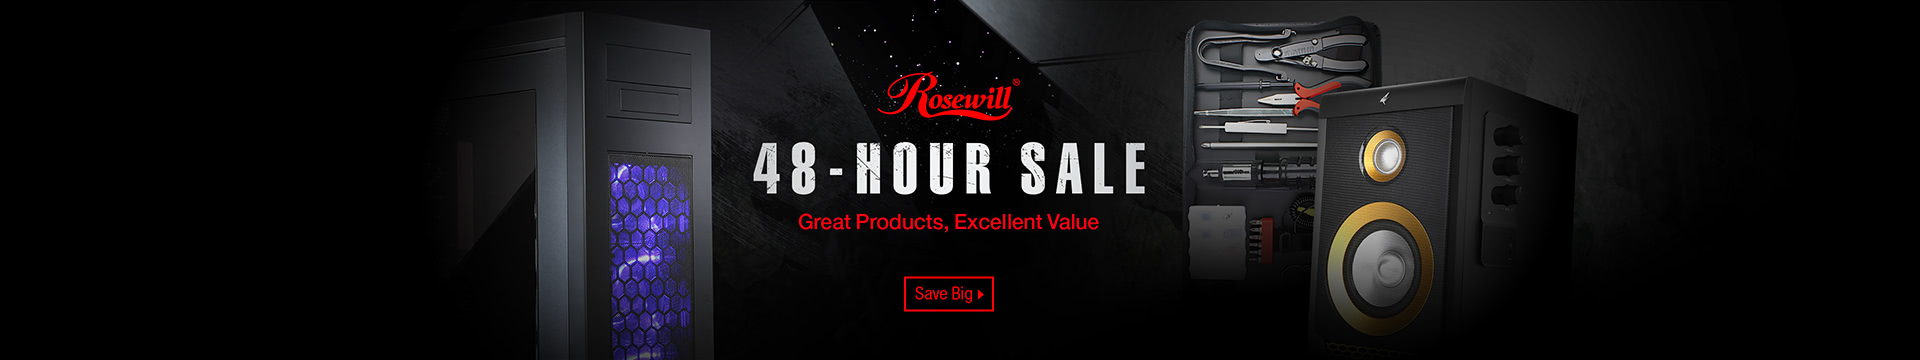 Rosewill 48 Hour Sale